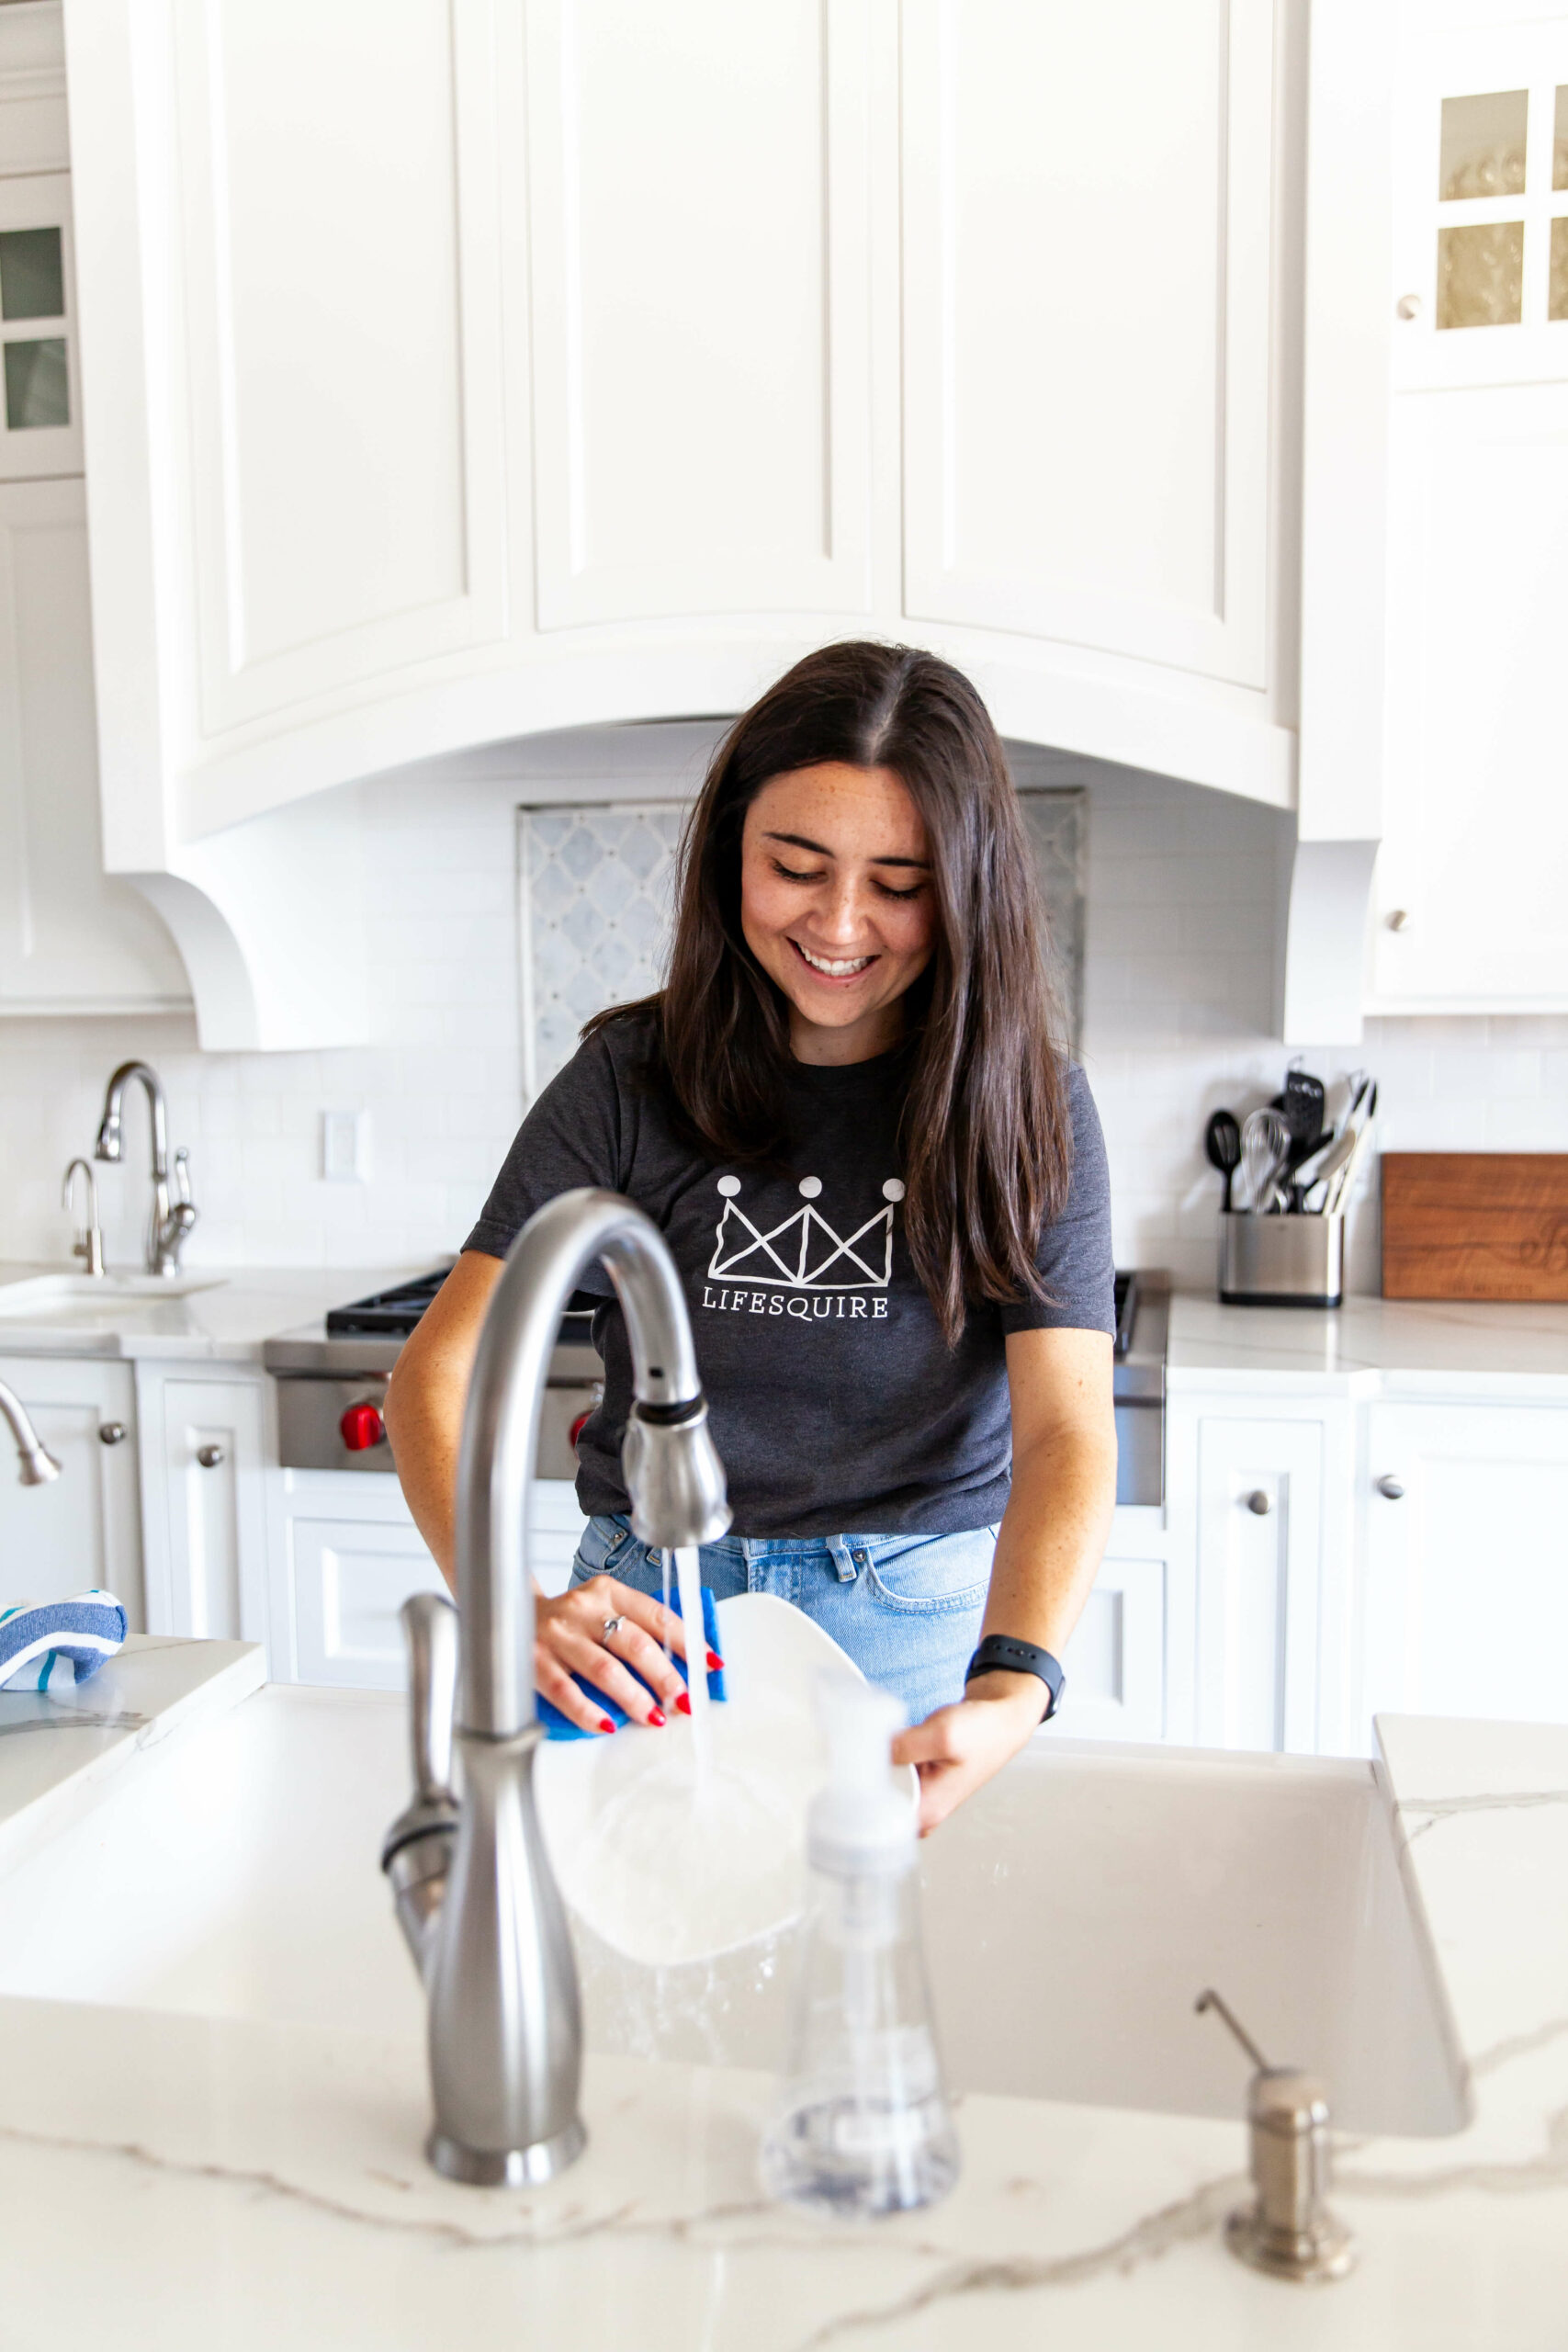 A woman with dark hair stands in a kitchen rinsing a bowl in a sink